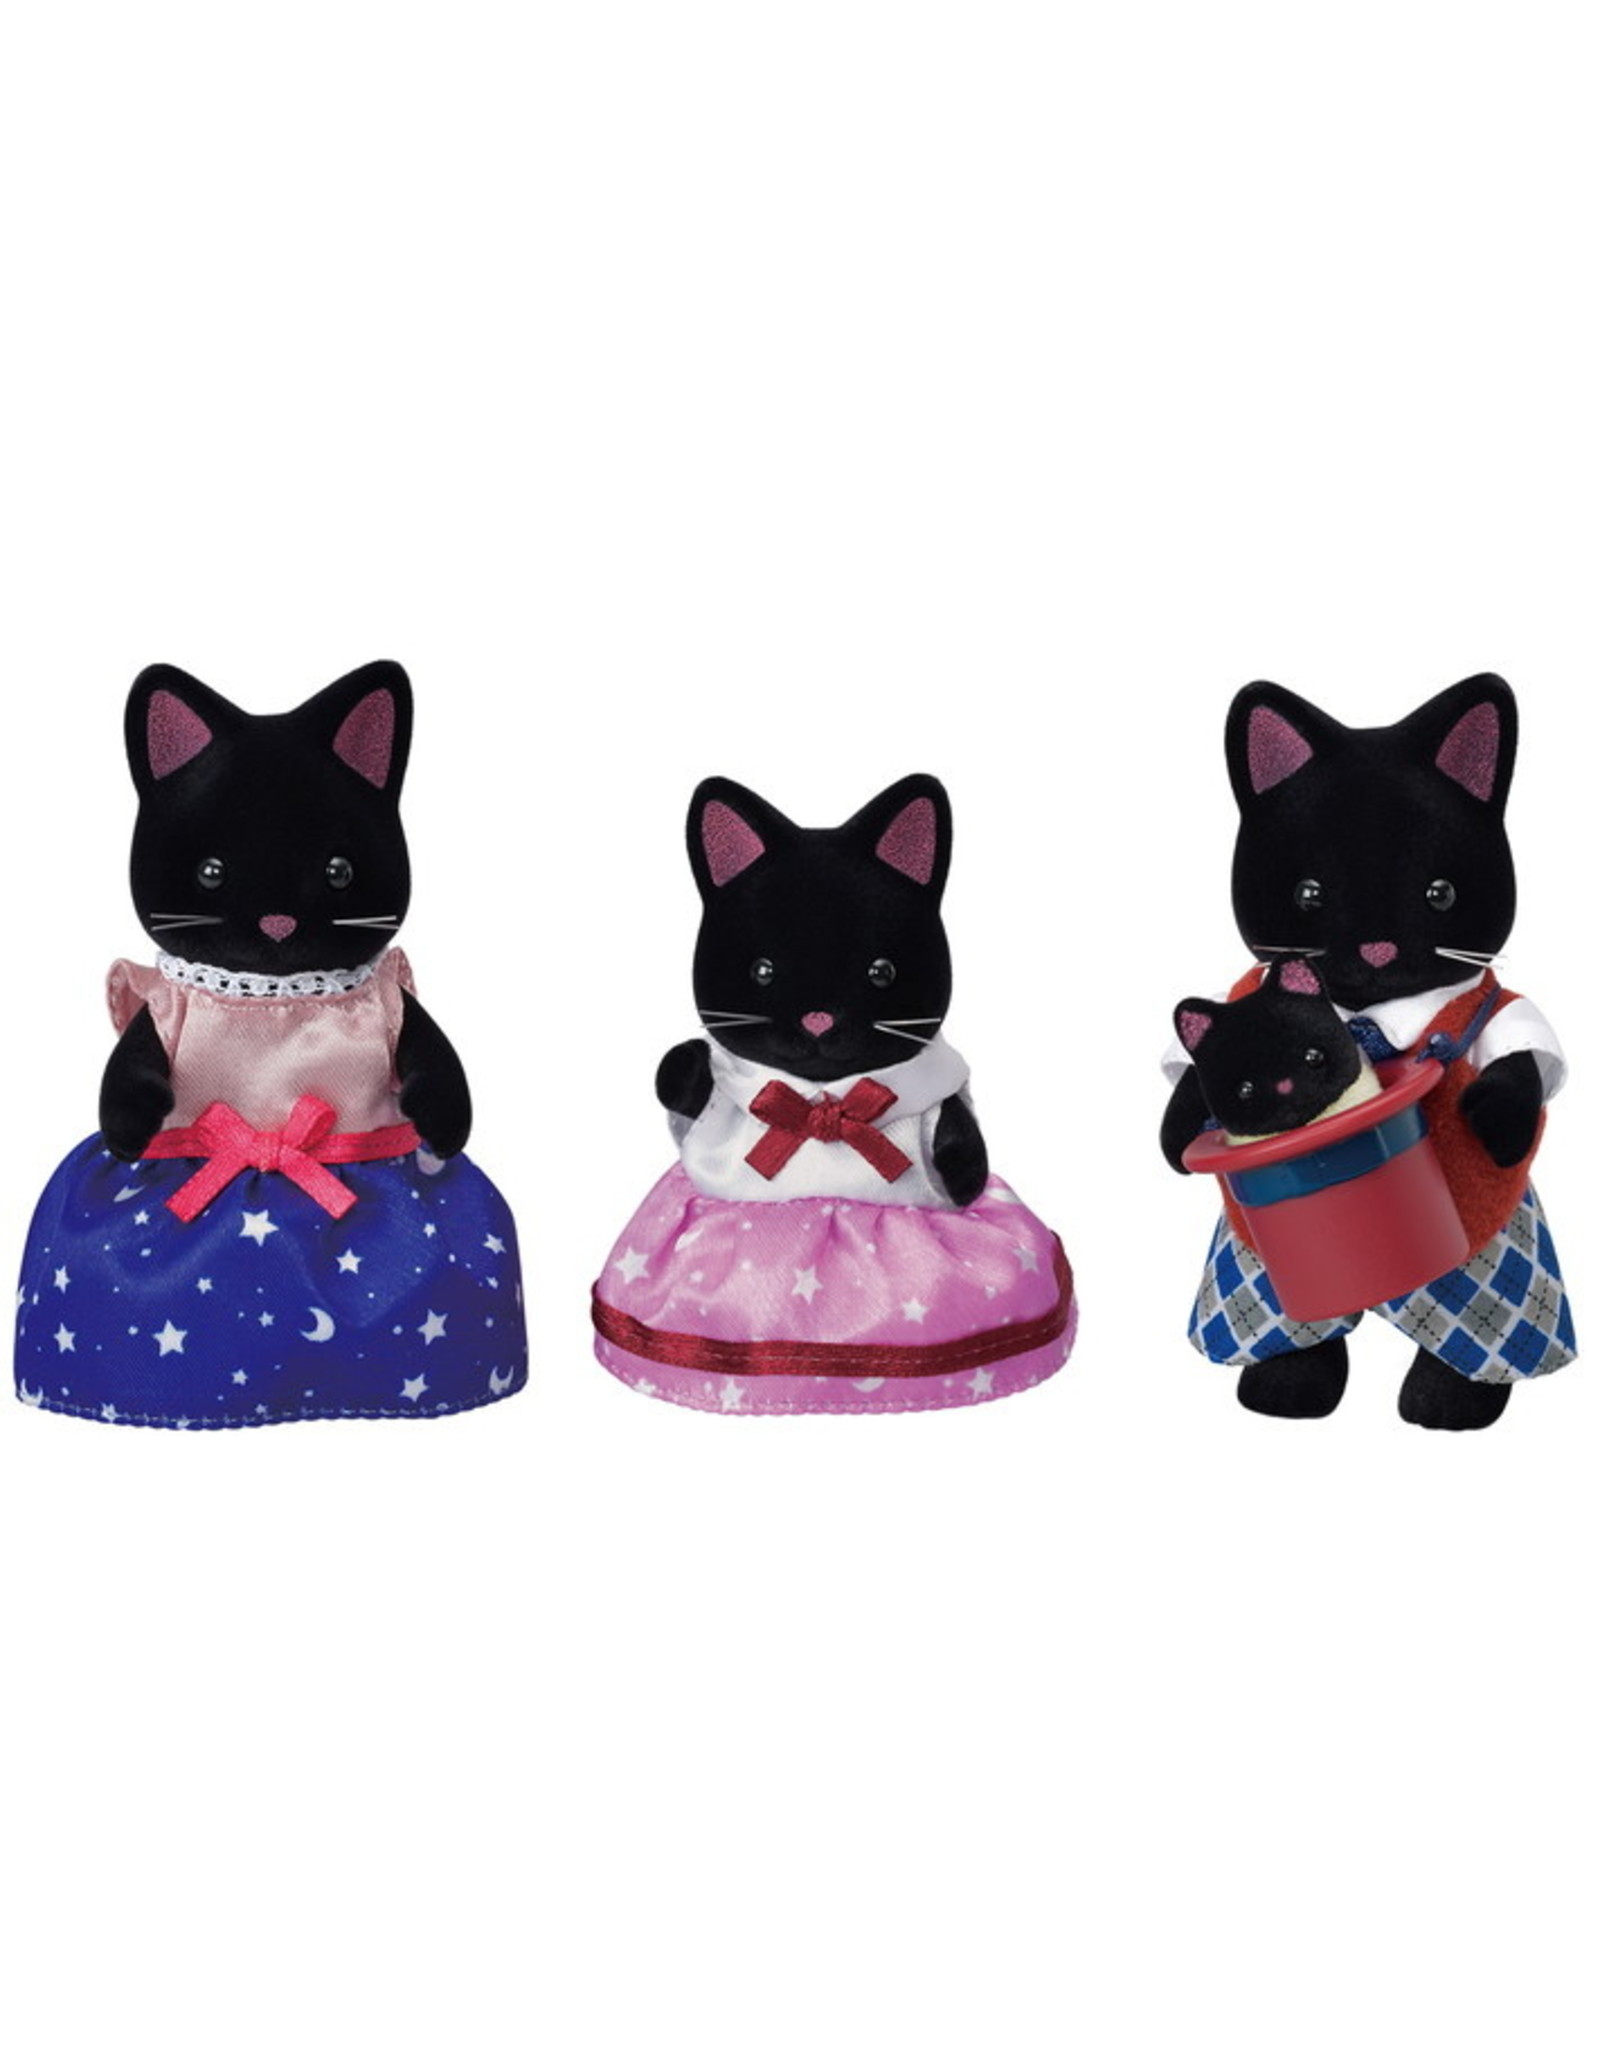 Calico Critters Calico Critters Midnight Cat Family